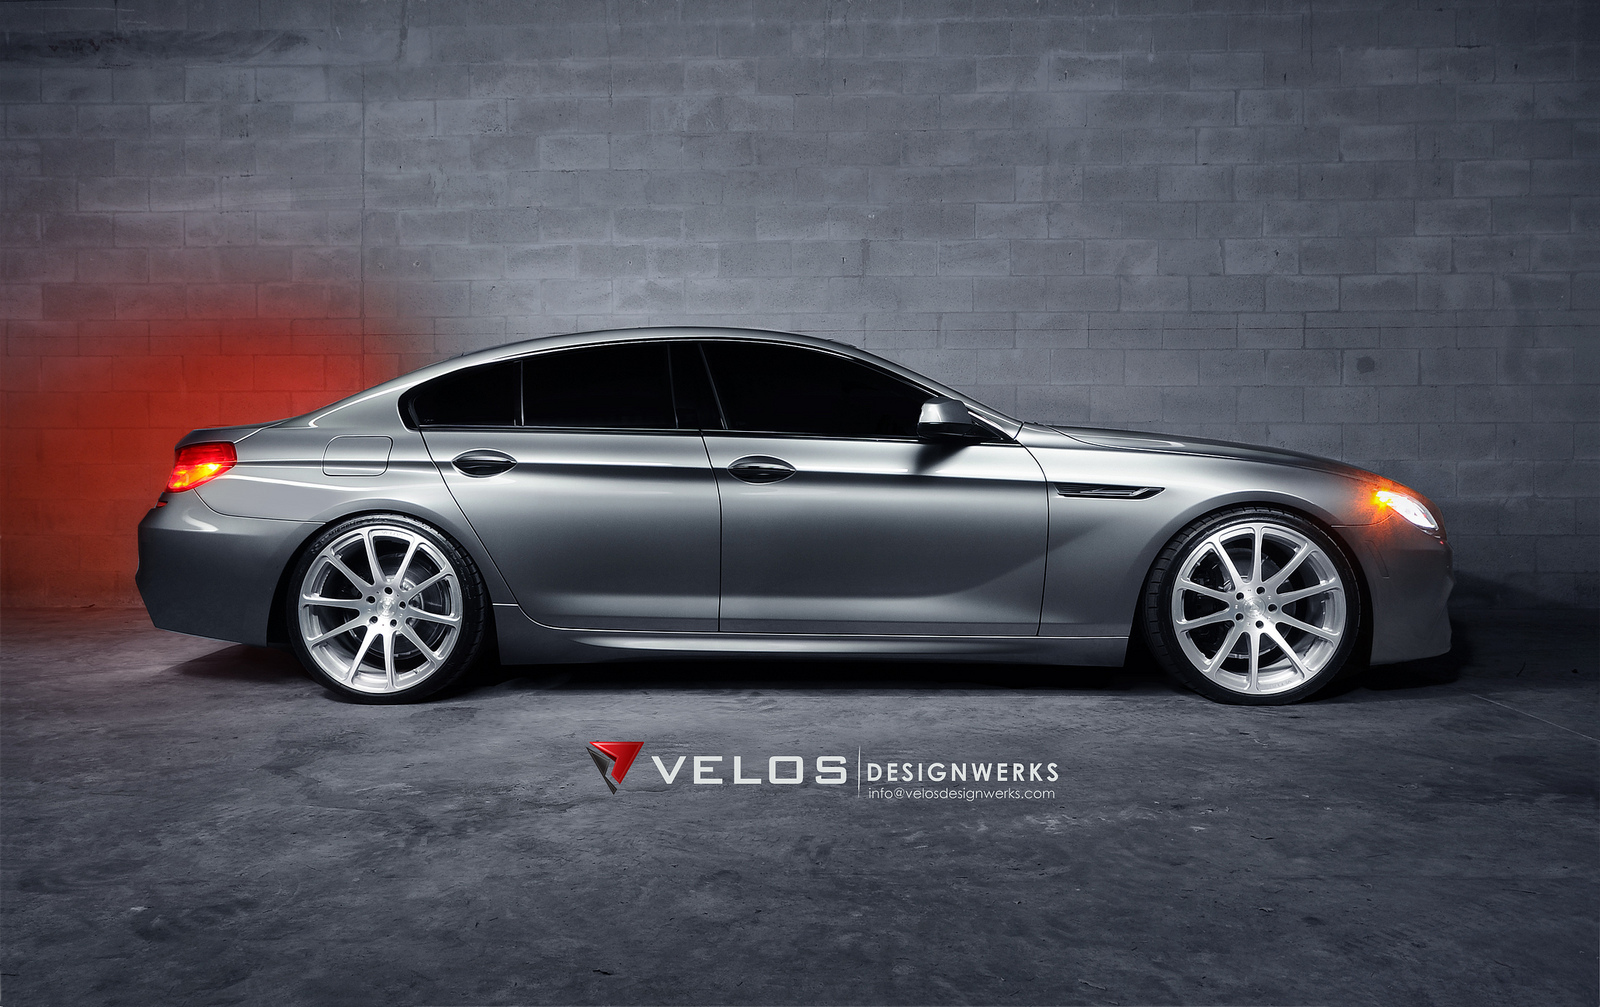 bmw 6 series gran coupe by velos designwerks. Black Bedroom Furniture Sets. Home Design Ideas